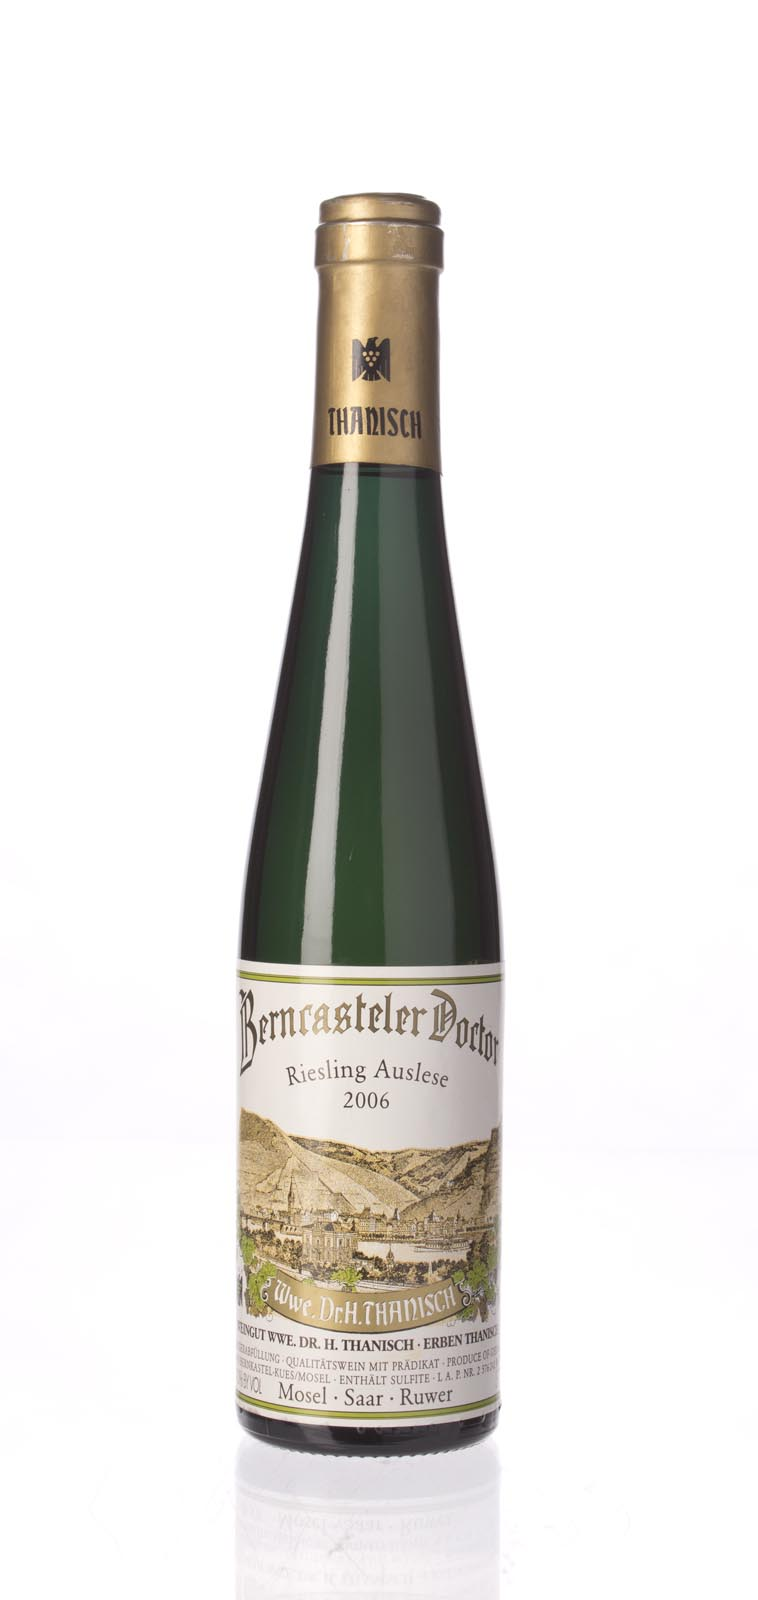 Dr. H. Thanisch Bernkasteler Doctor Riesling Auslese 2006, 375ml (WA91) from The BPW - Merchants of rare and fine wines.